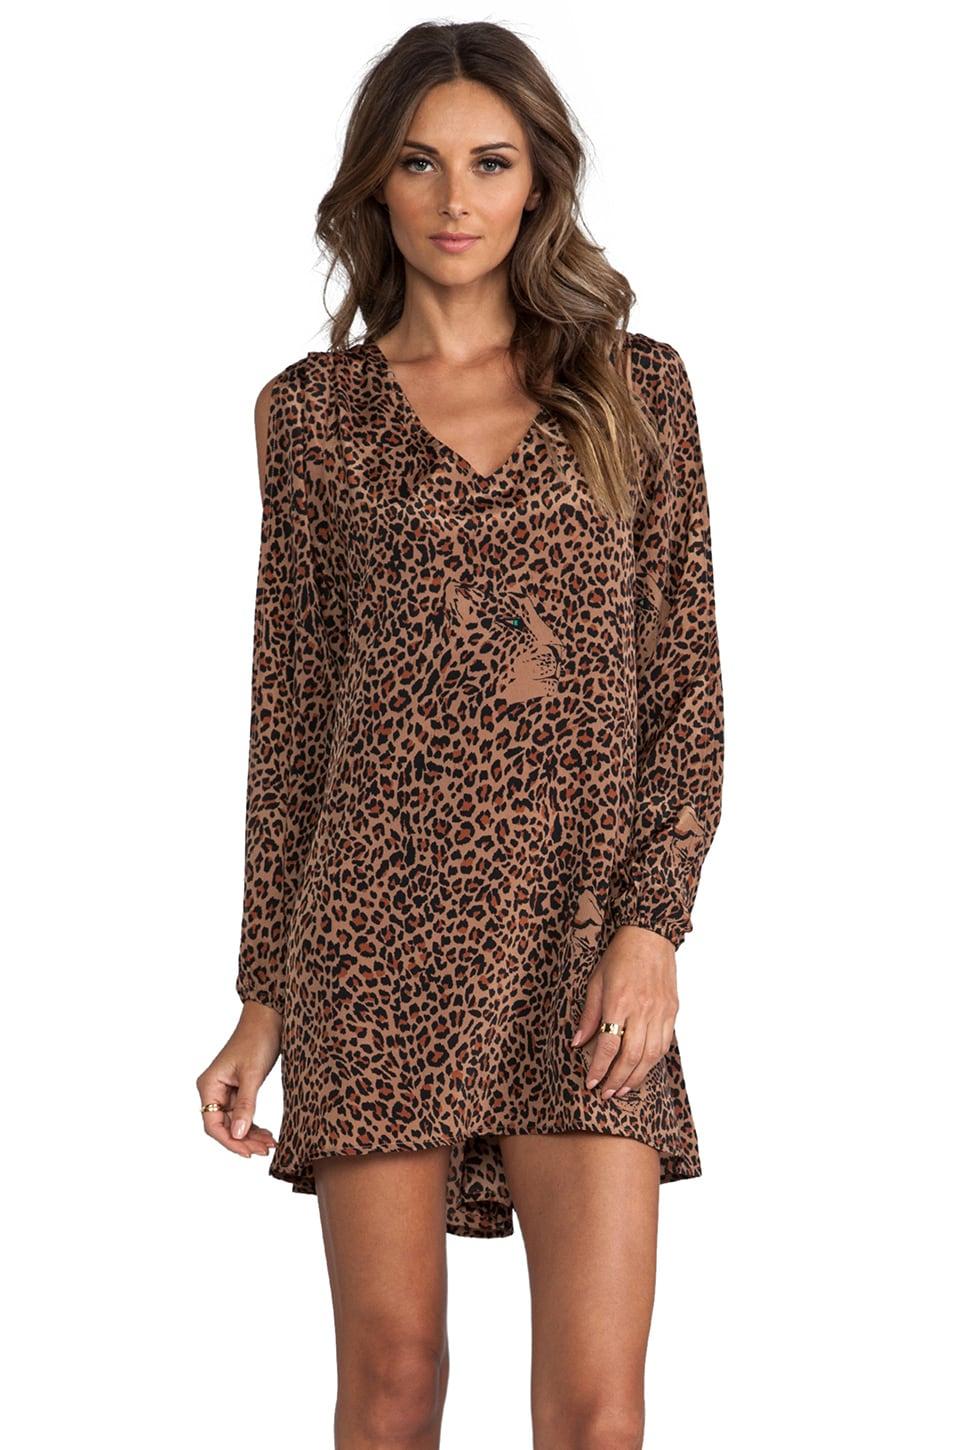 Lovers + Friends Gracie Dress in Leopard